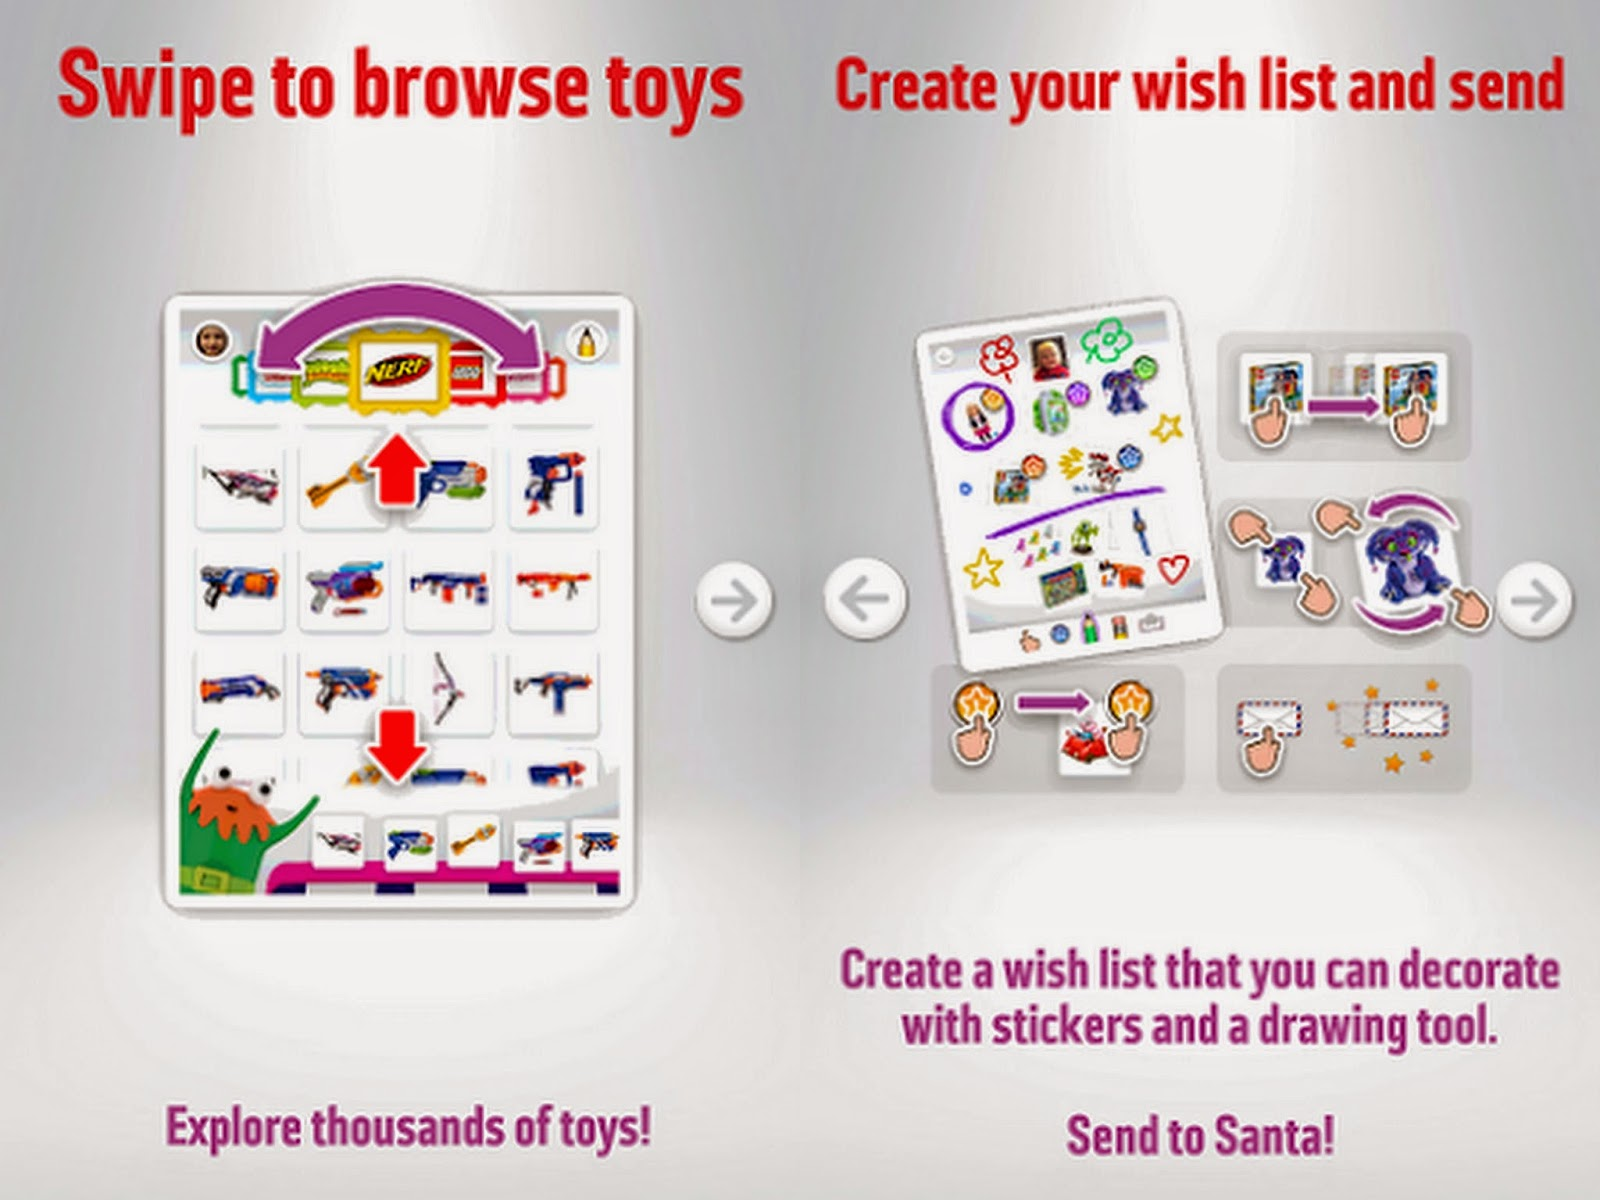 Example of Argos wish list app.  pages - information on use